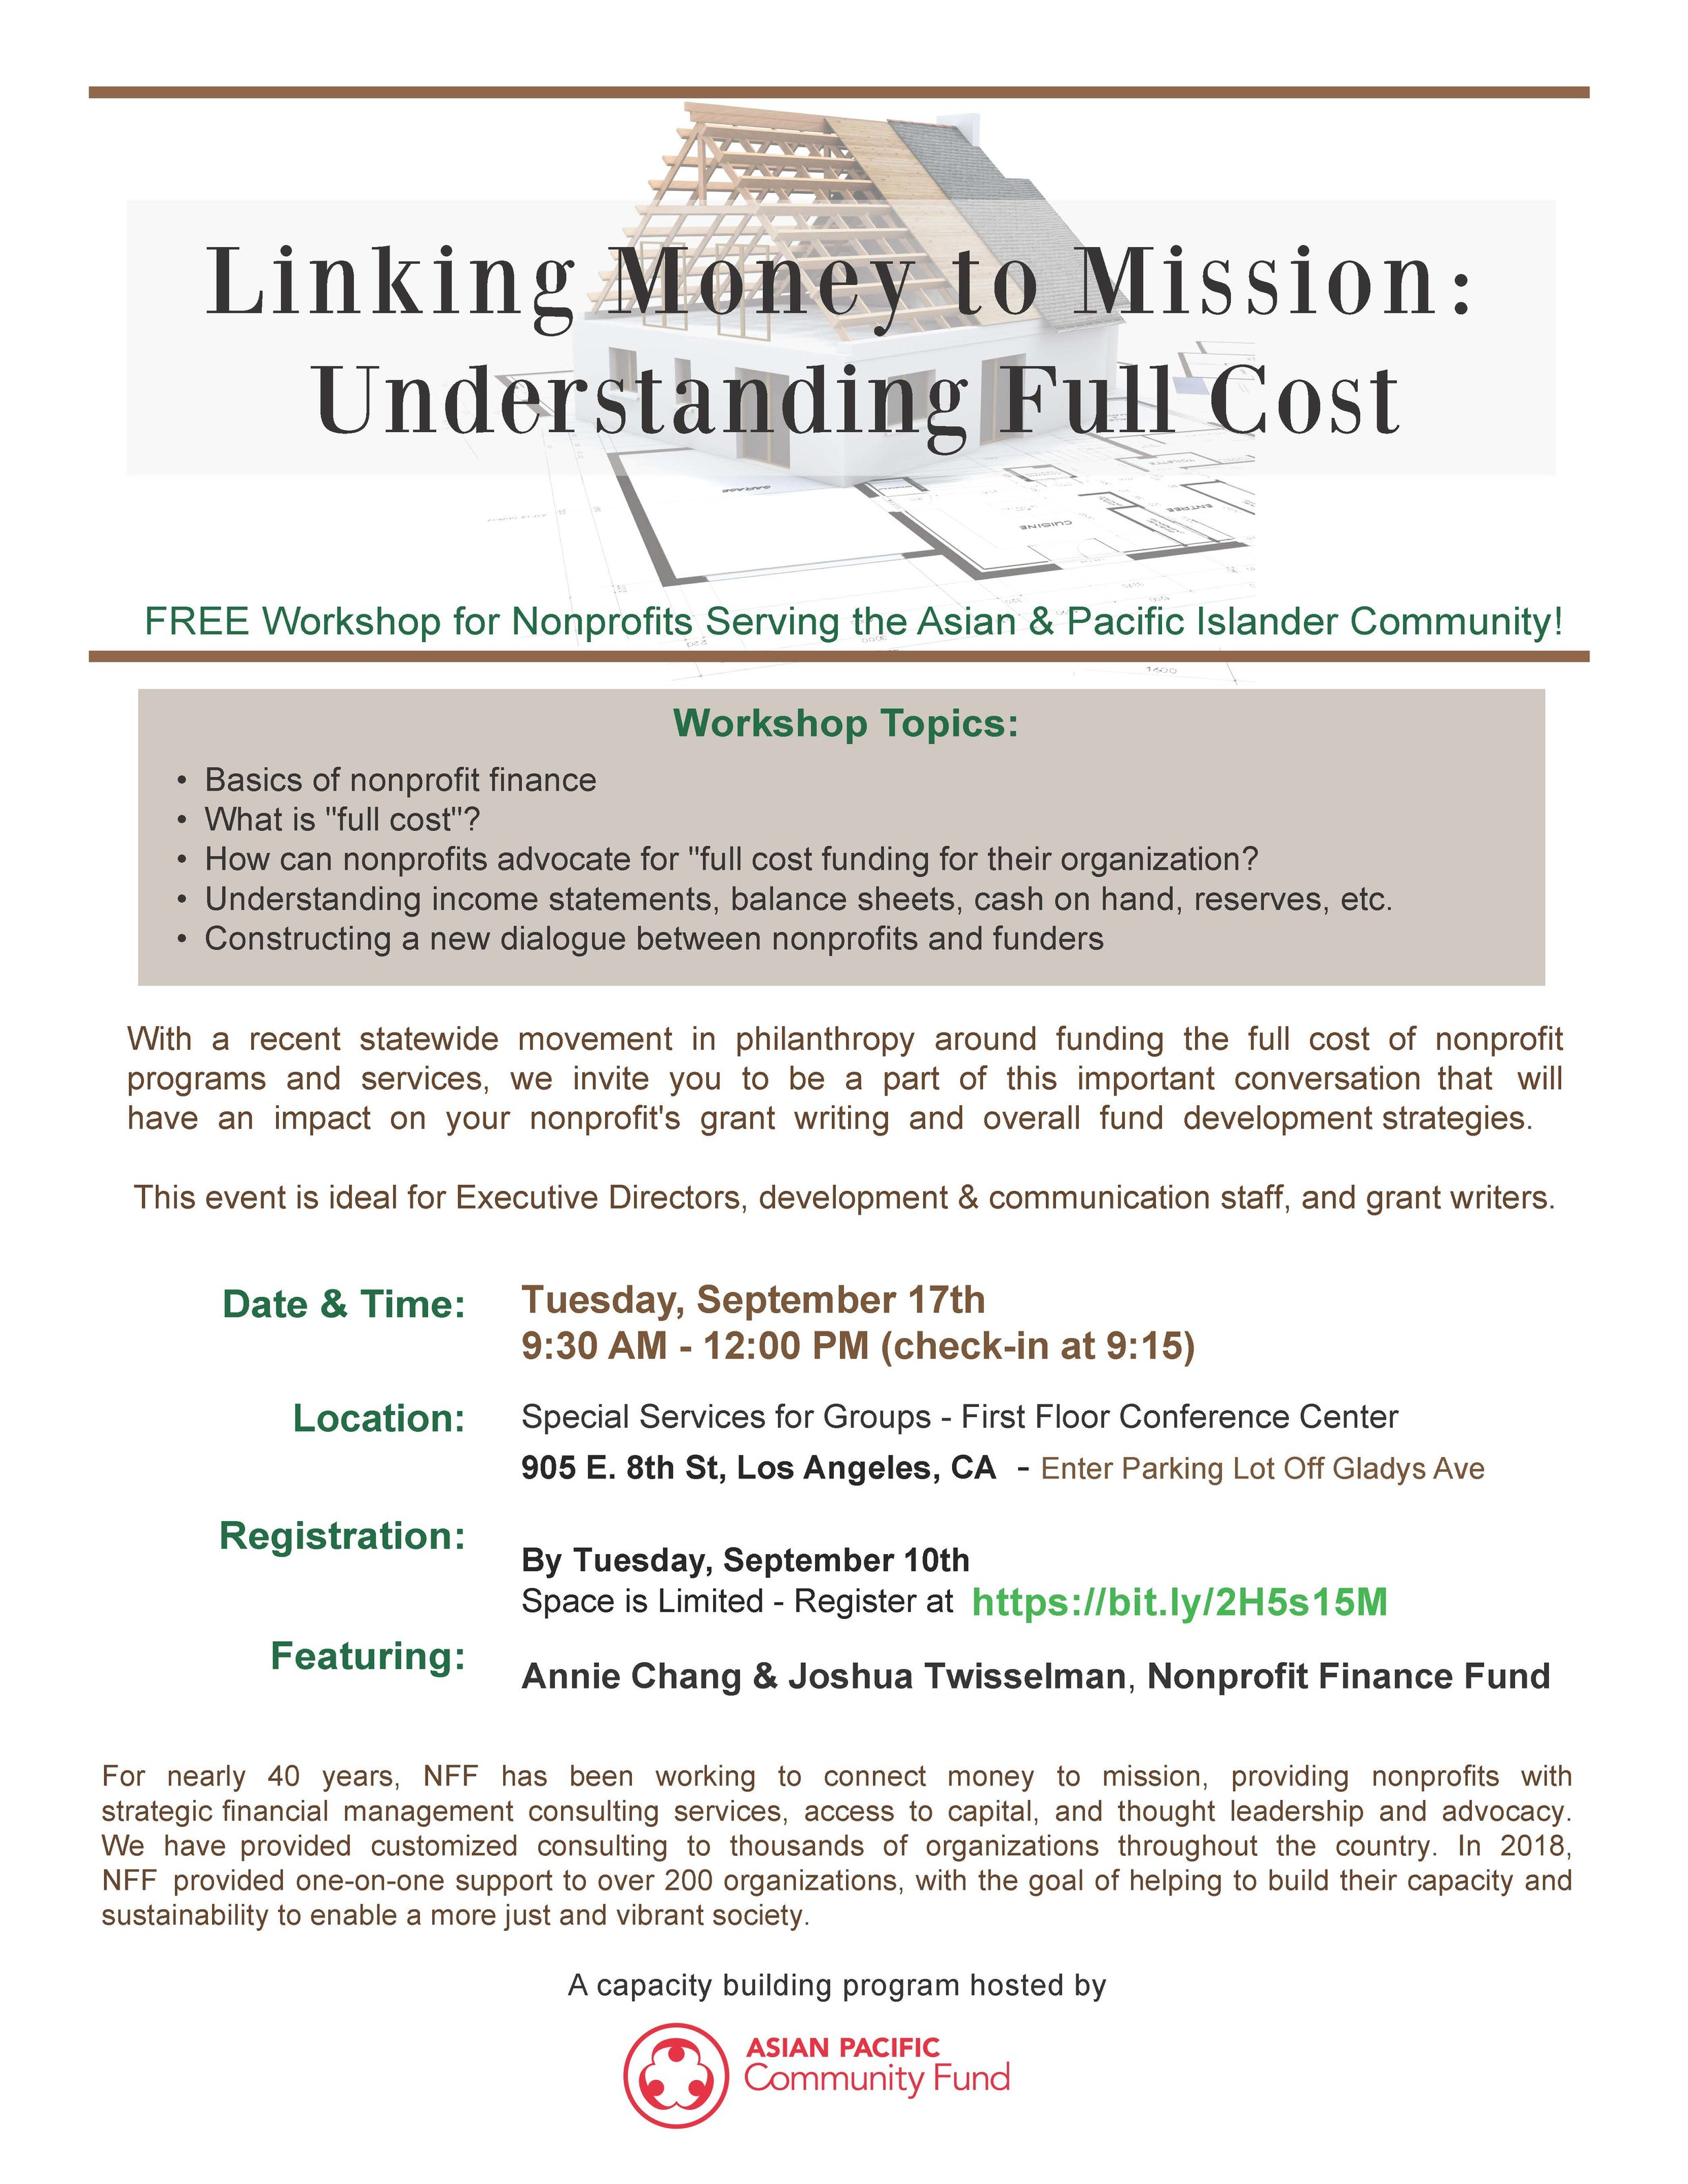 Understanding Full Cost workshop flier 9-17-19.jpg